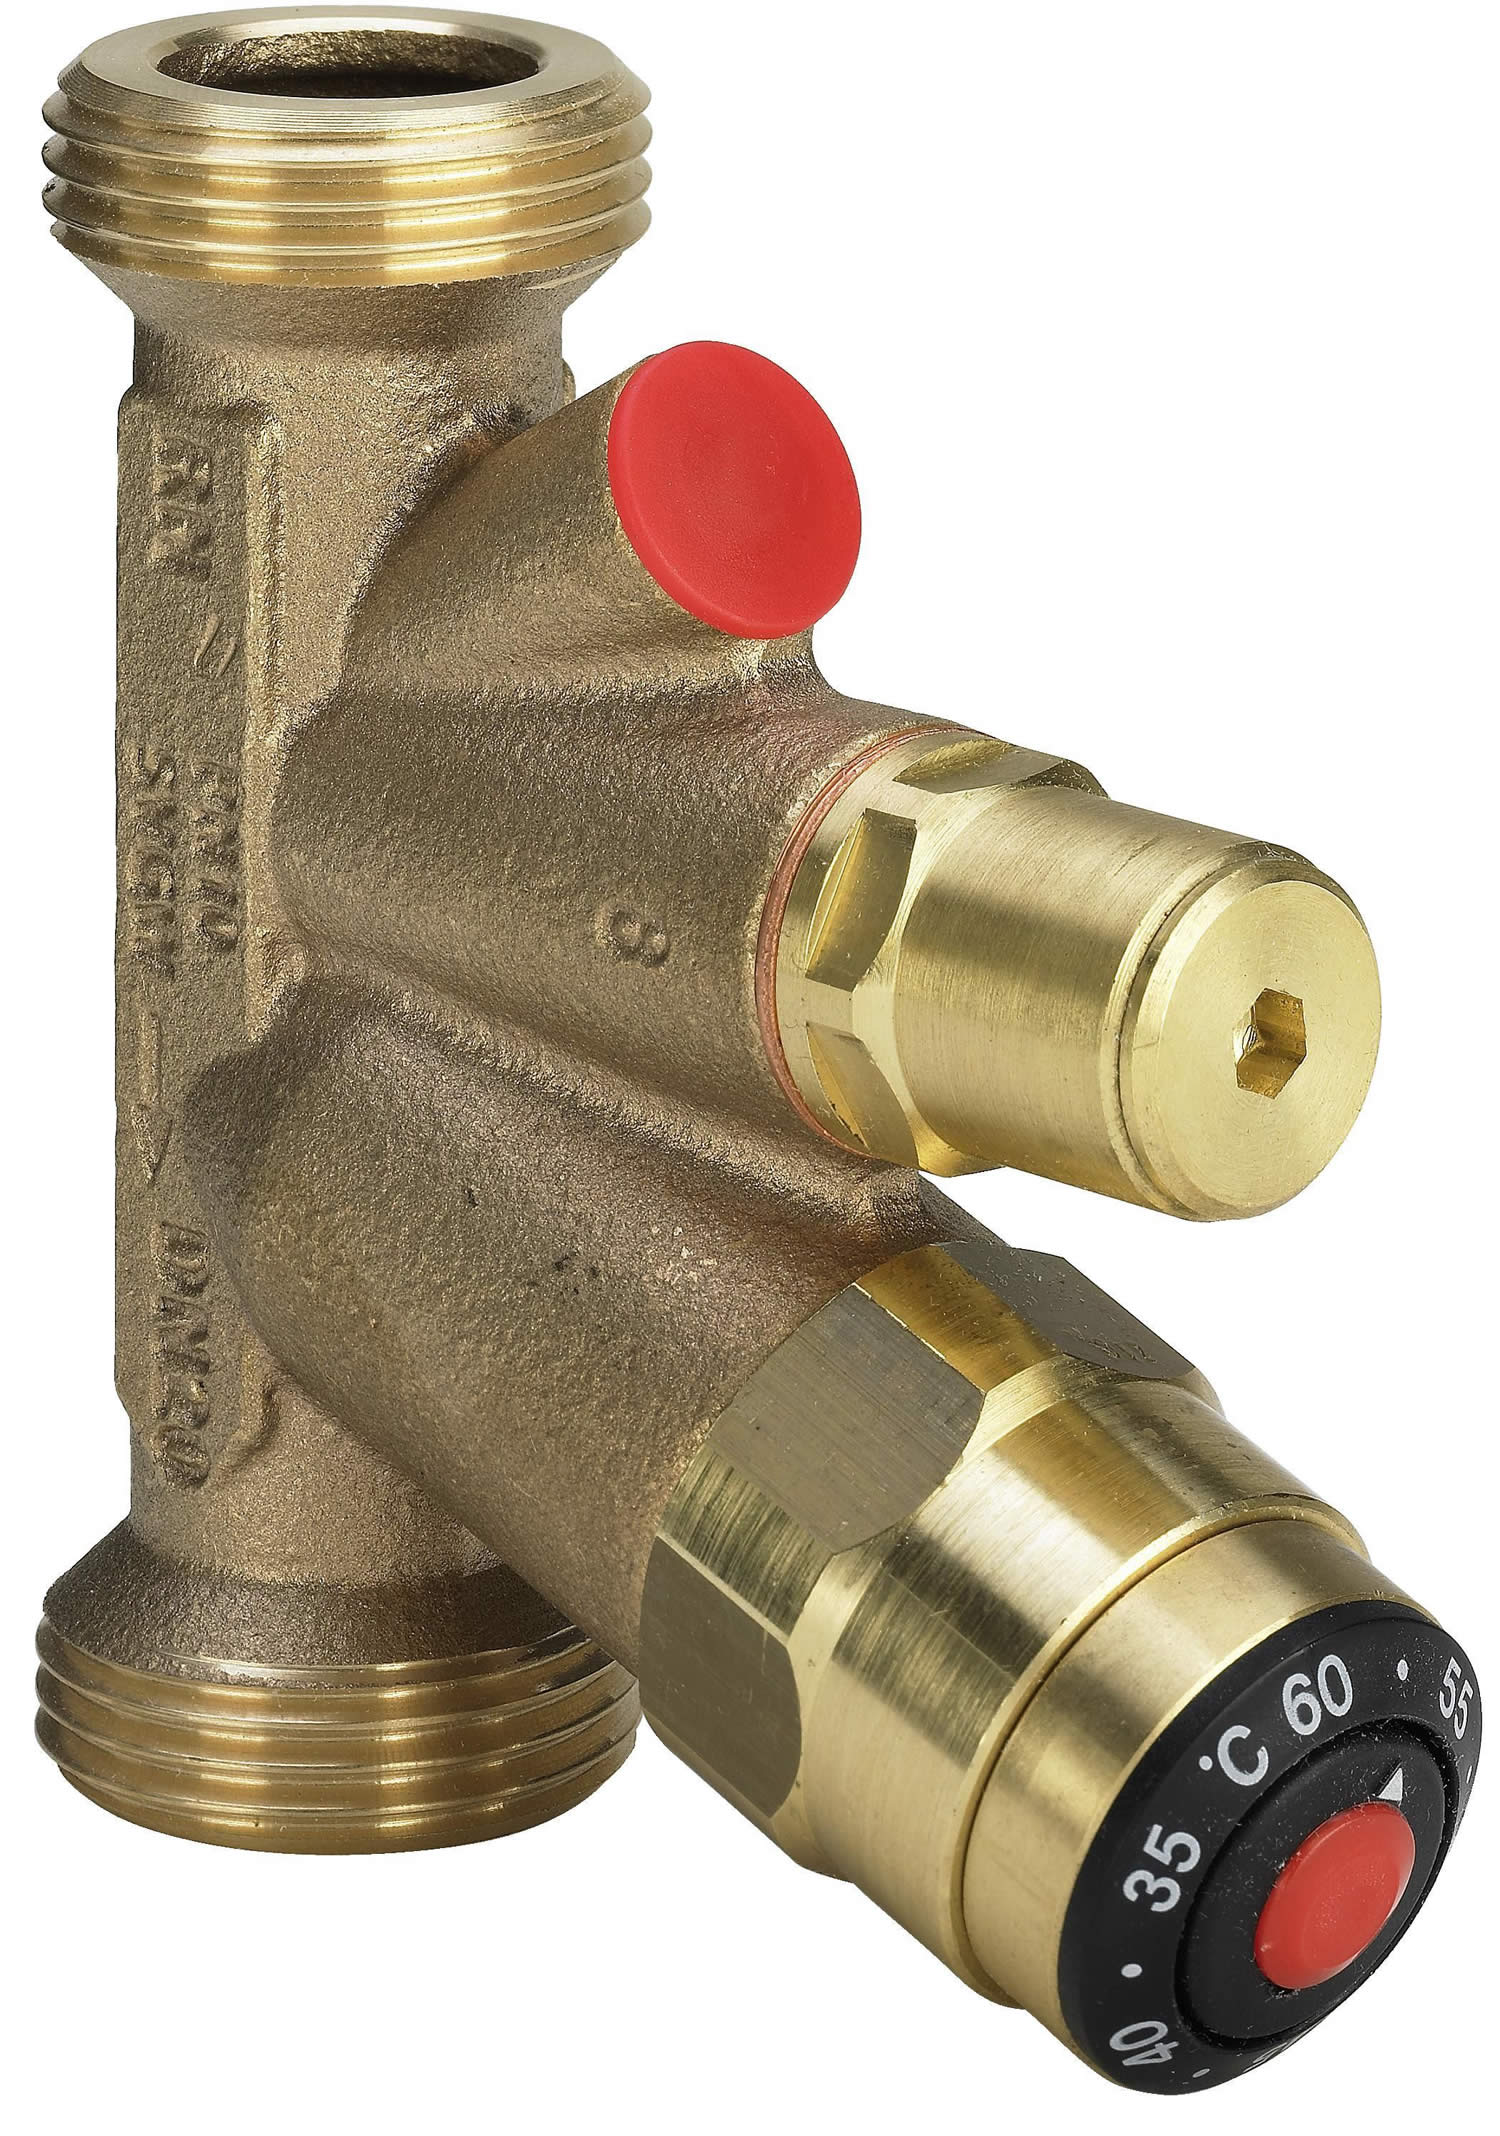 Easytop Valve For Hydraulic Balancing Of Hot Water